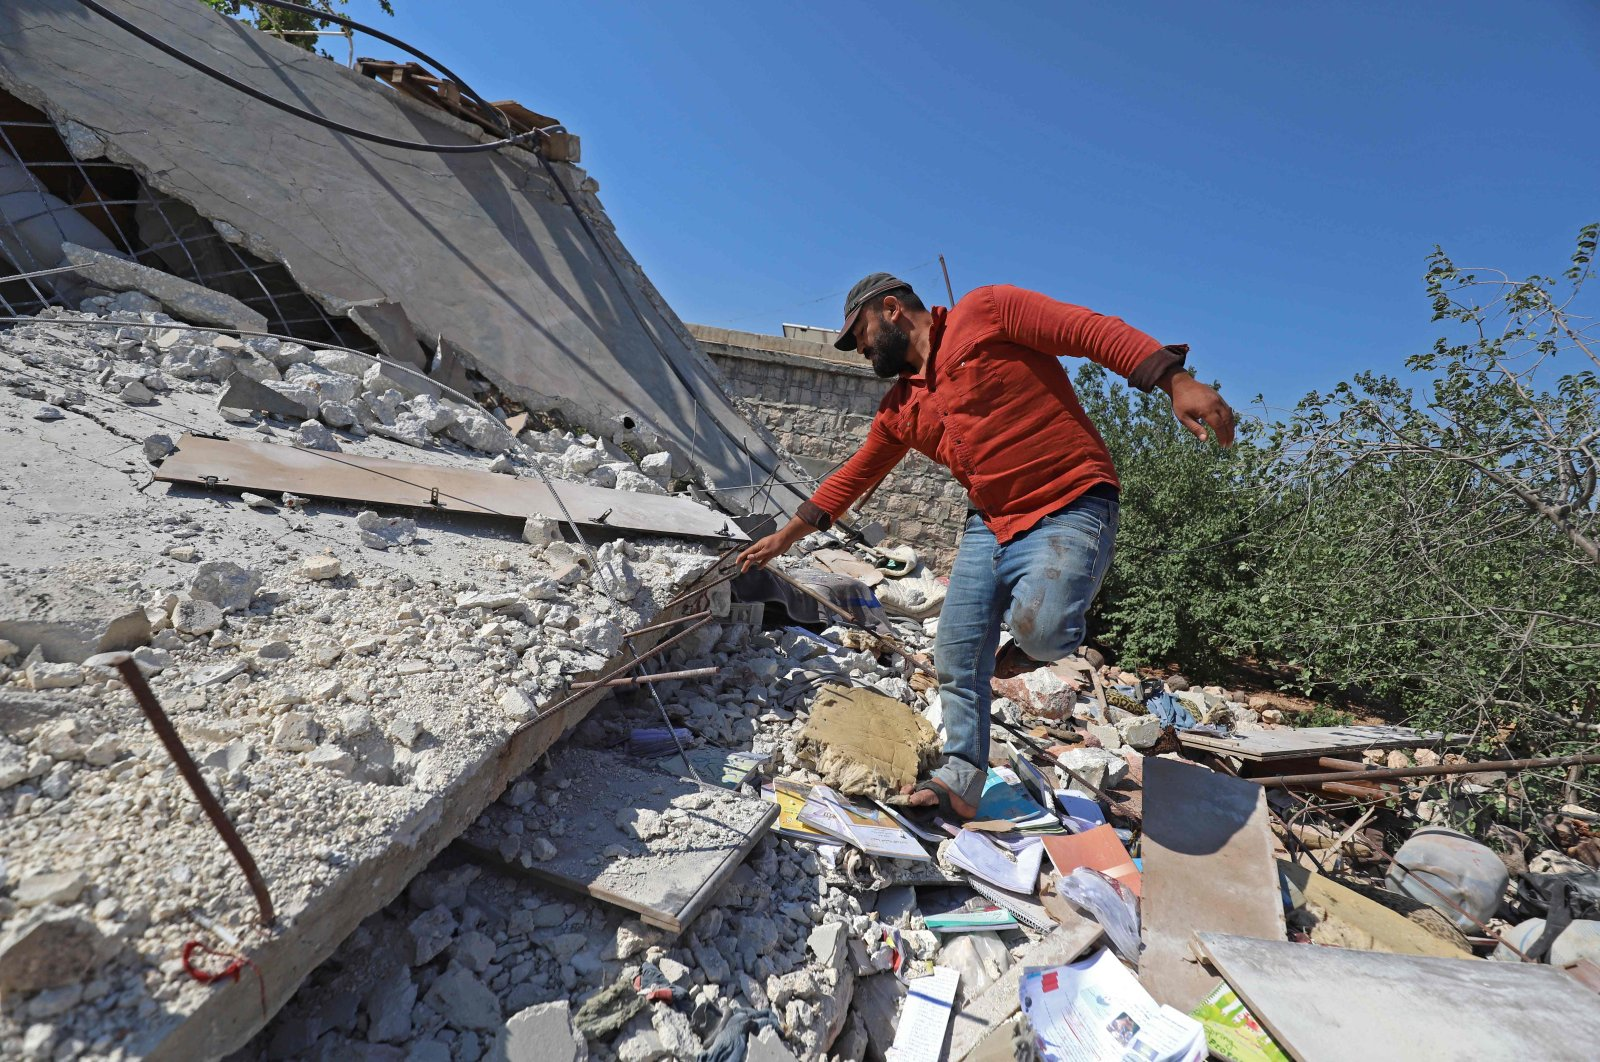 A Syrian man walks atop the ruins of a house, destroyed in a reported regime artillery shelling, in the village of Iblin in the Jabal al-Zawiya region of the opposition-held northwestern Idlib province, Syria, on July 22, 2021. (AFP Photo)